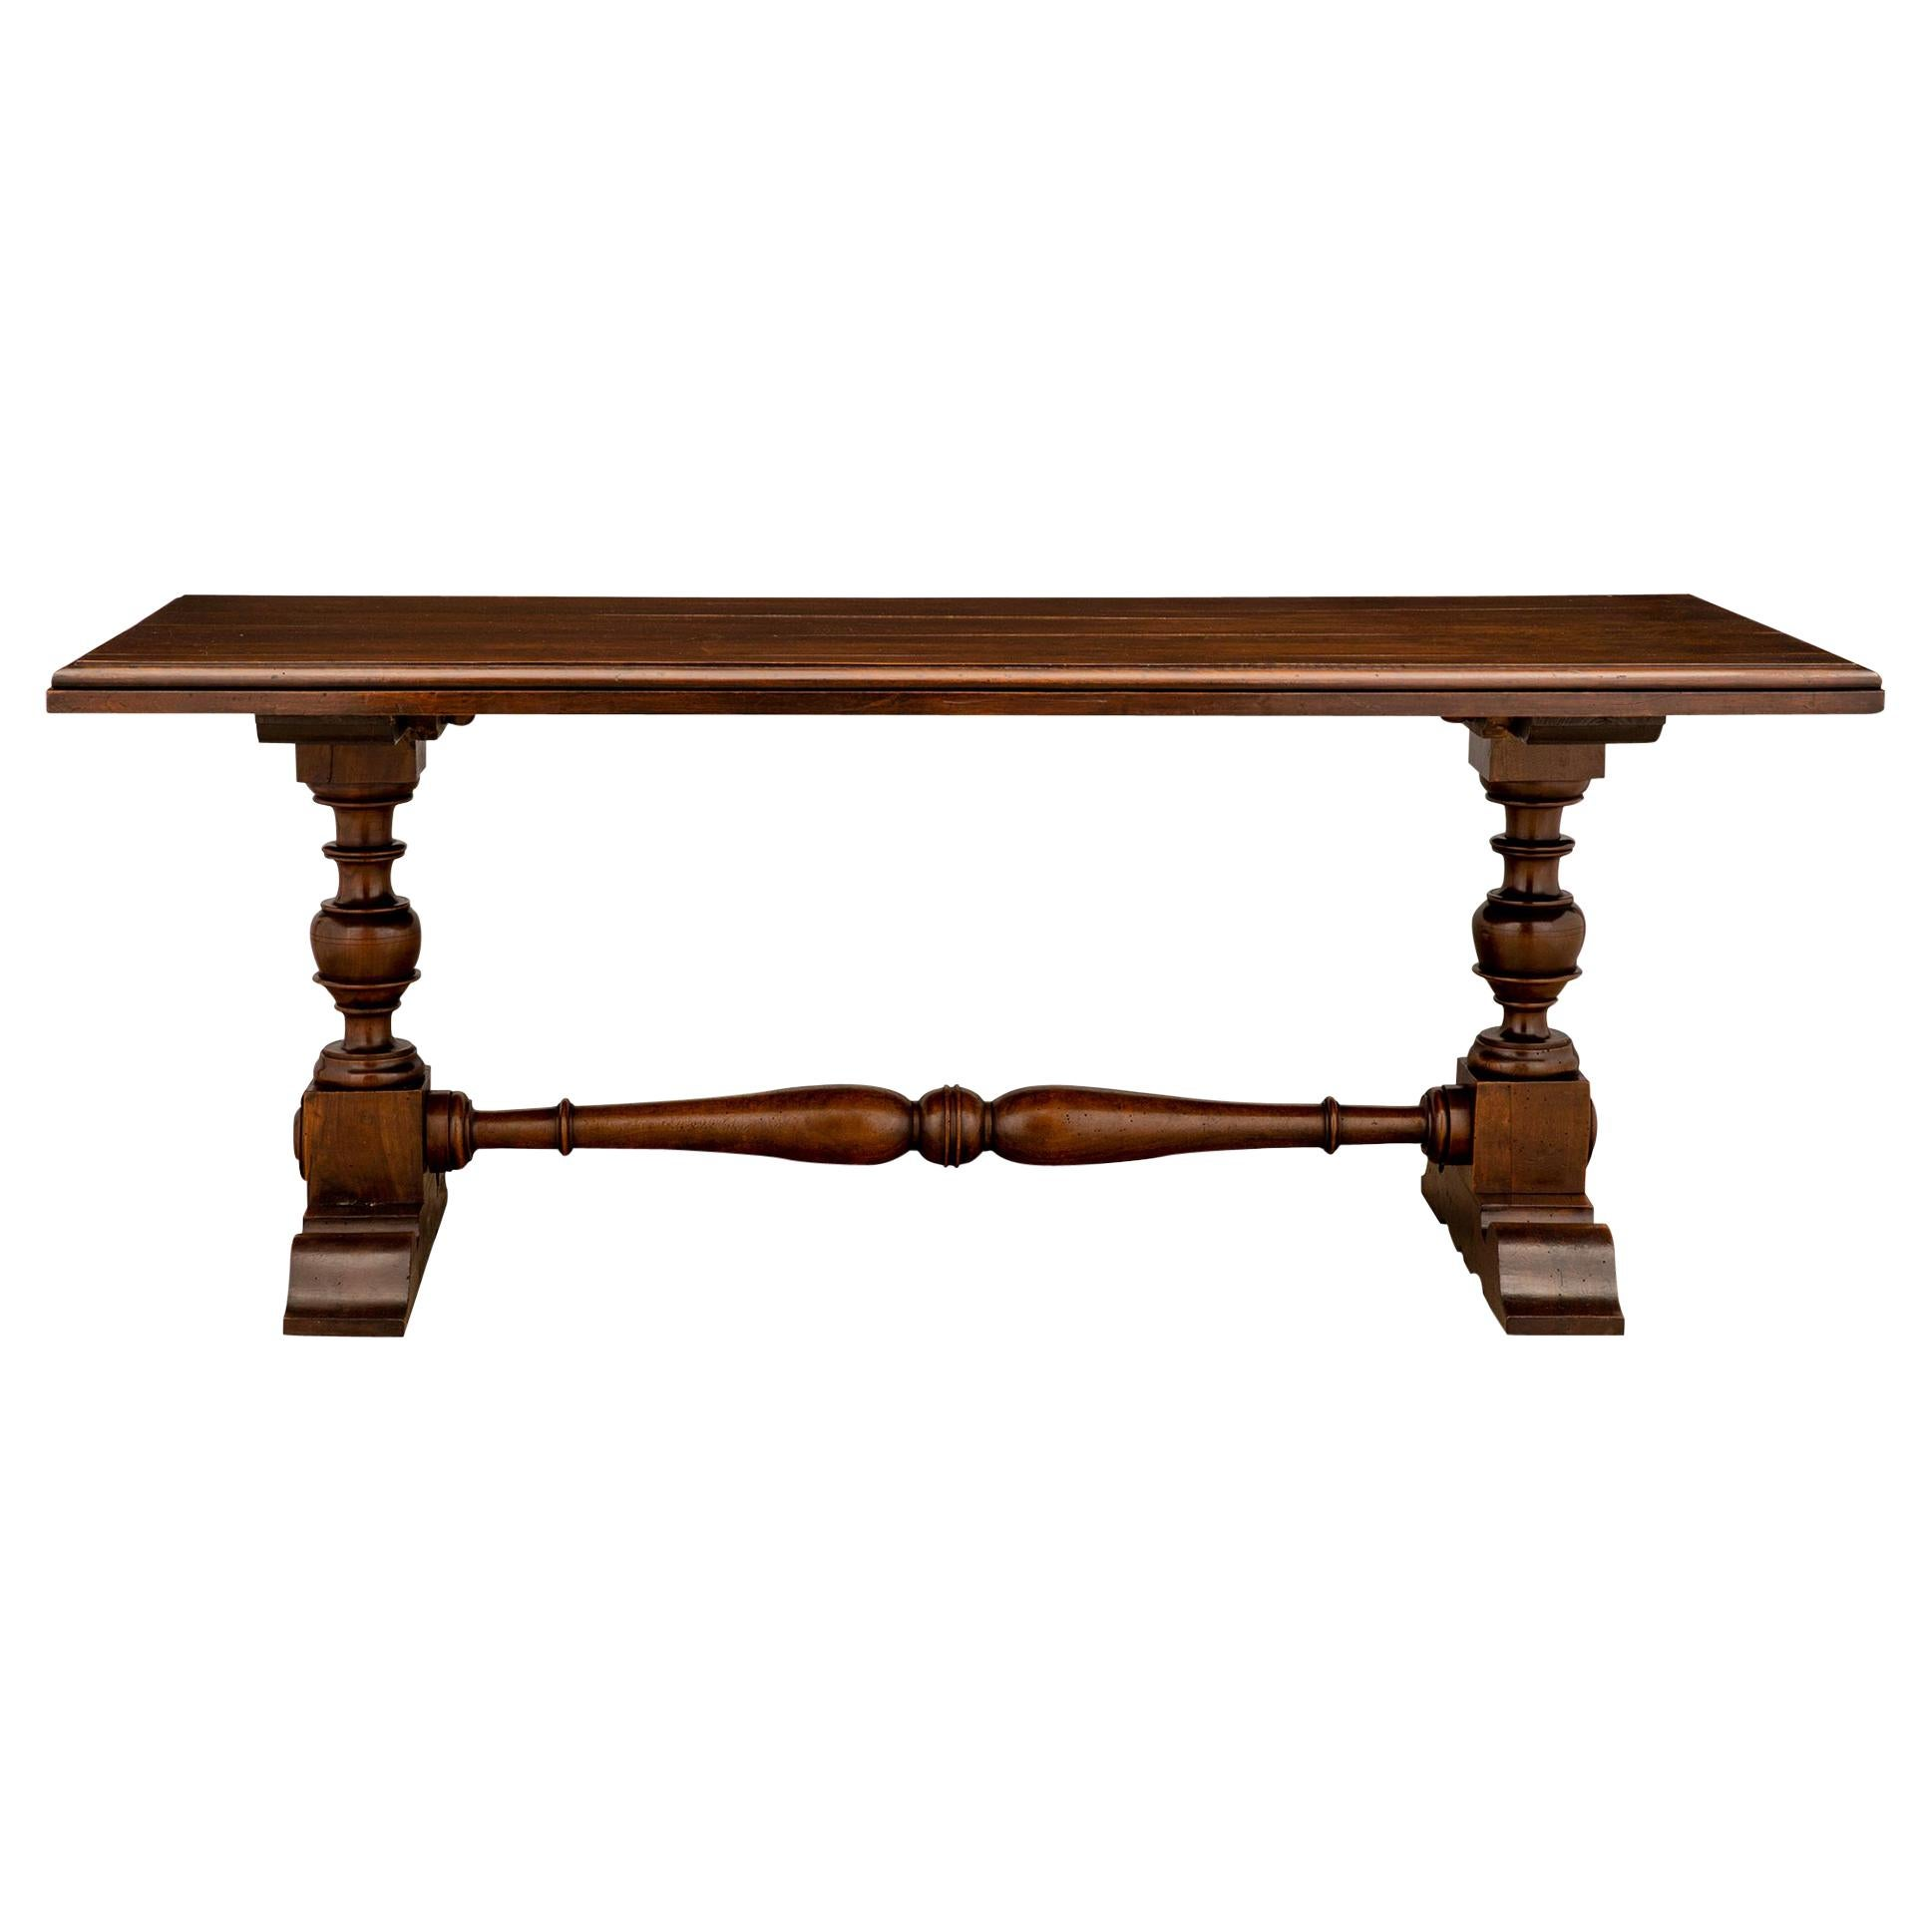 Italian 19th Century Walnut Refractory Dining Table